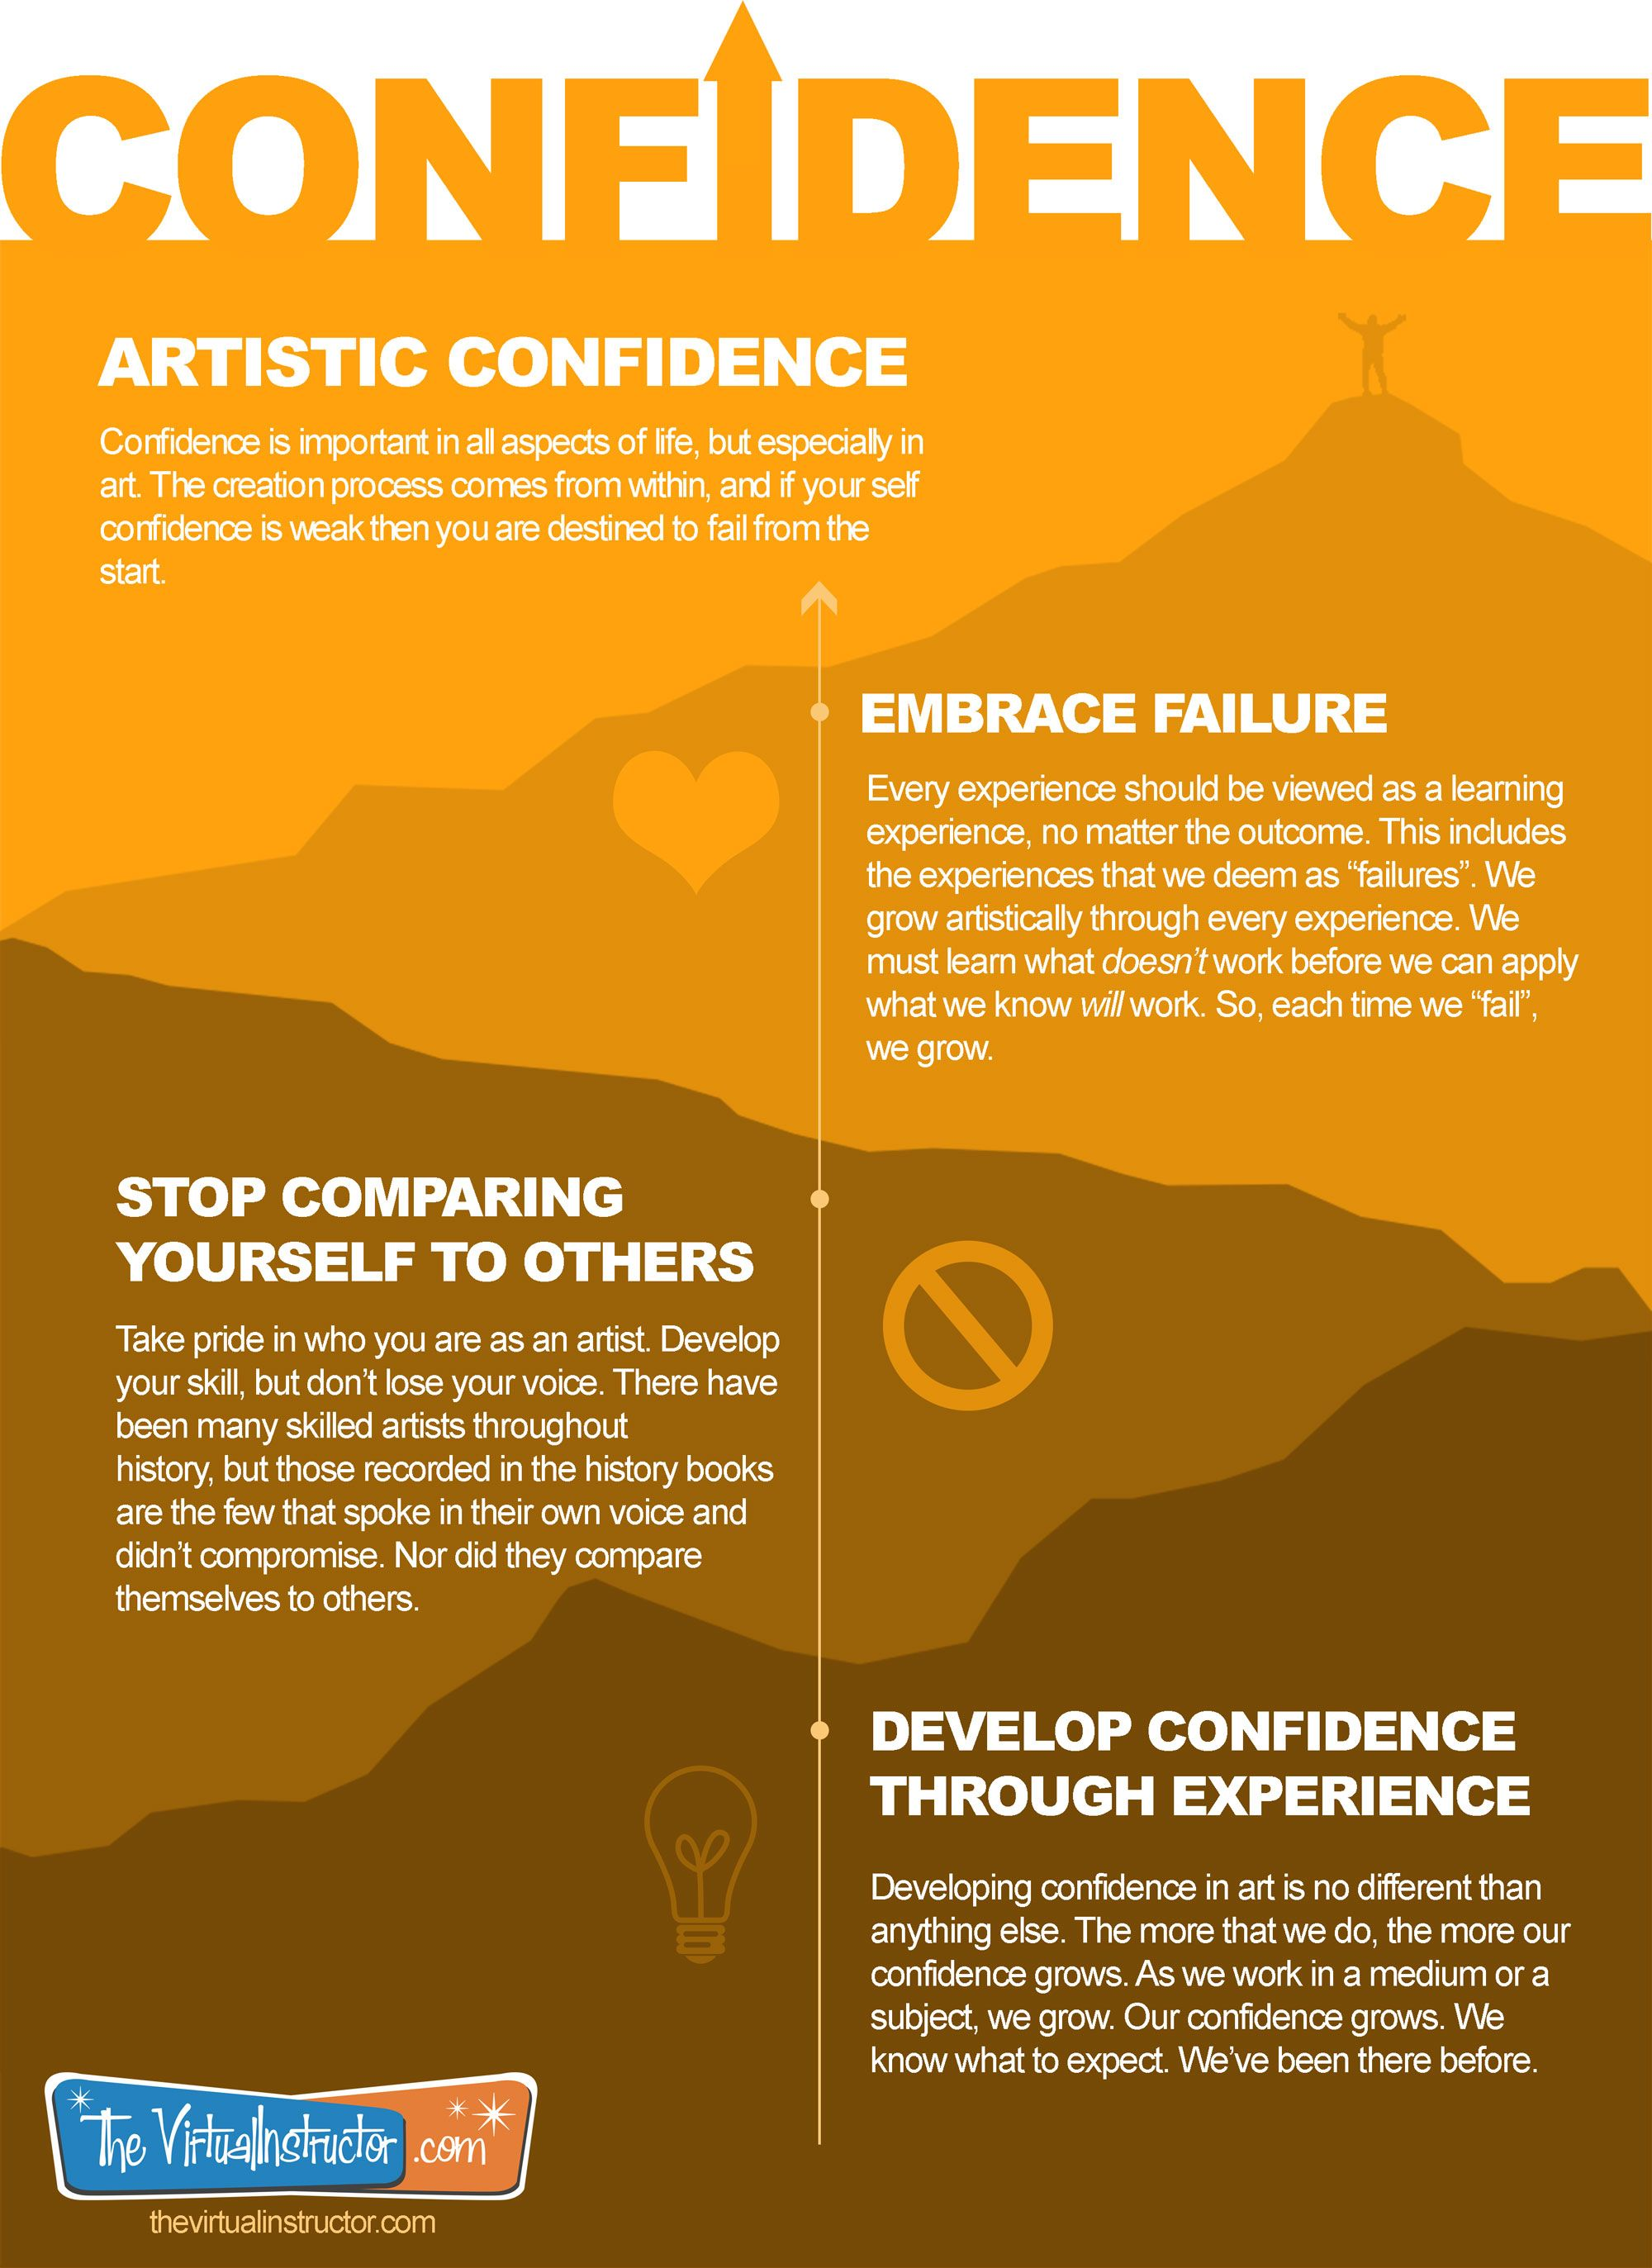 How To Grow Your Artistic Confidence Infographic With